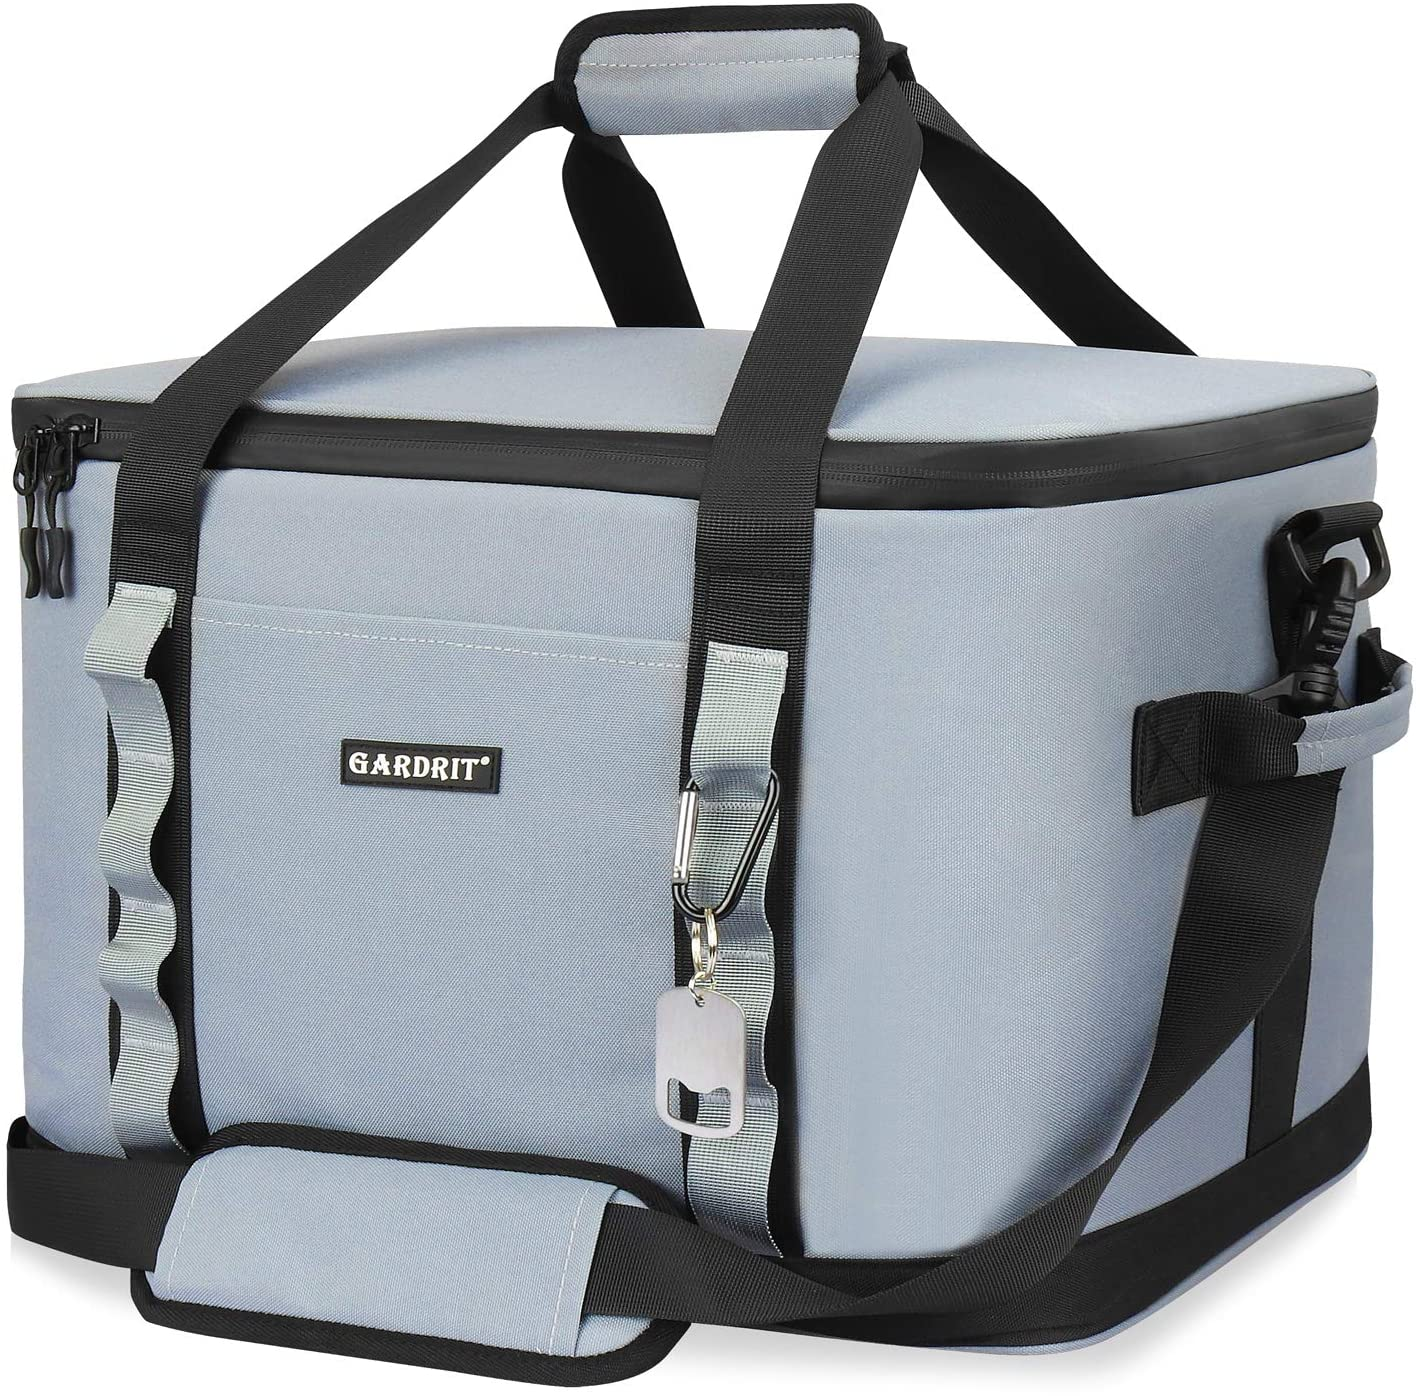 GARDRIT 60 Can Large Cooler Bag Leakproof Cooler Bag Suitable for Camping 39L//Grey Picnic/& Beach Collapsible Insulated Lunch Box